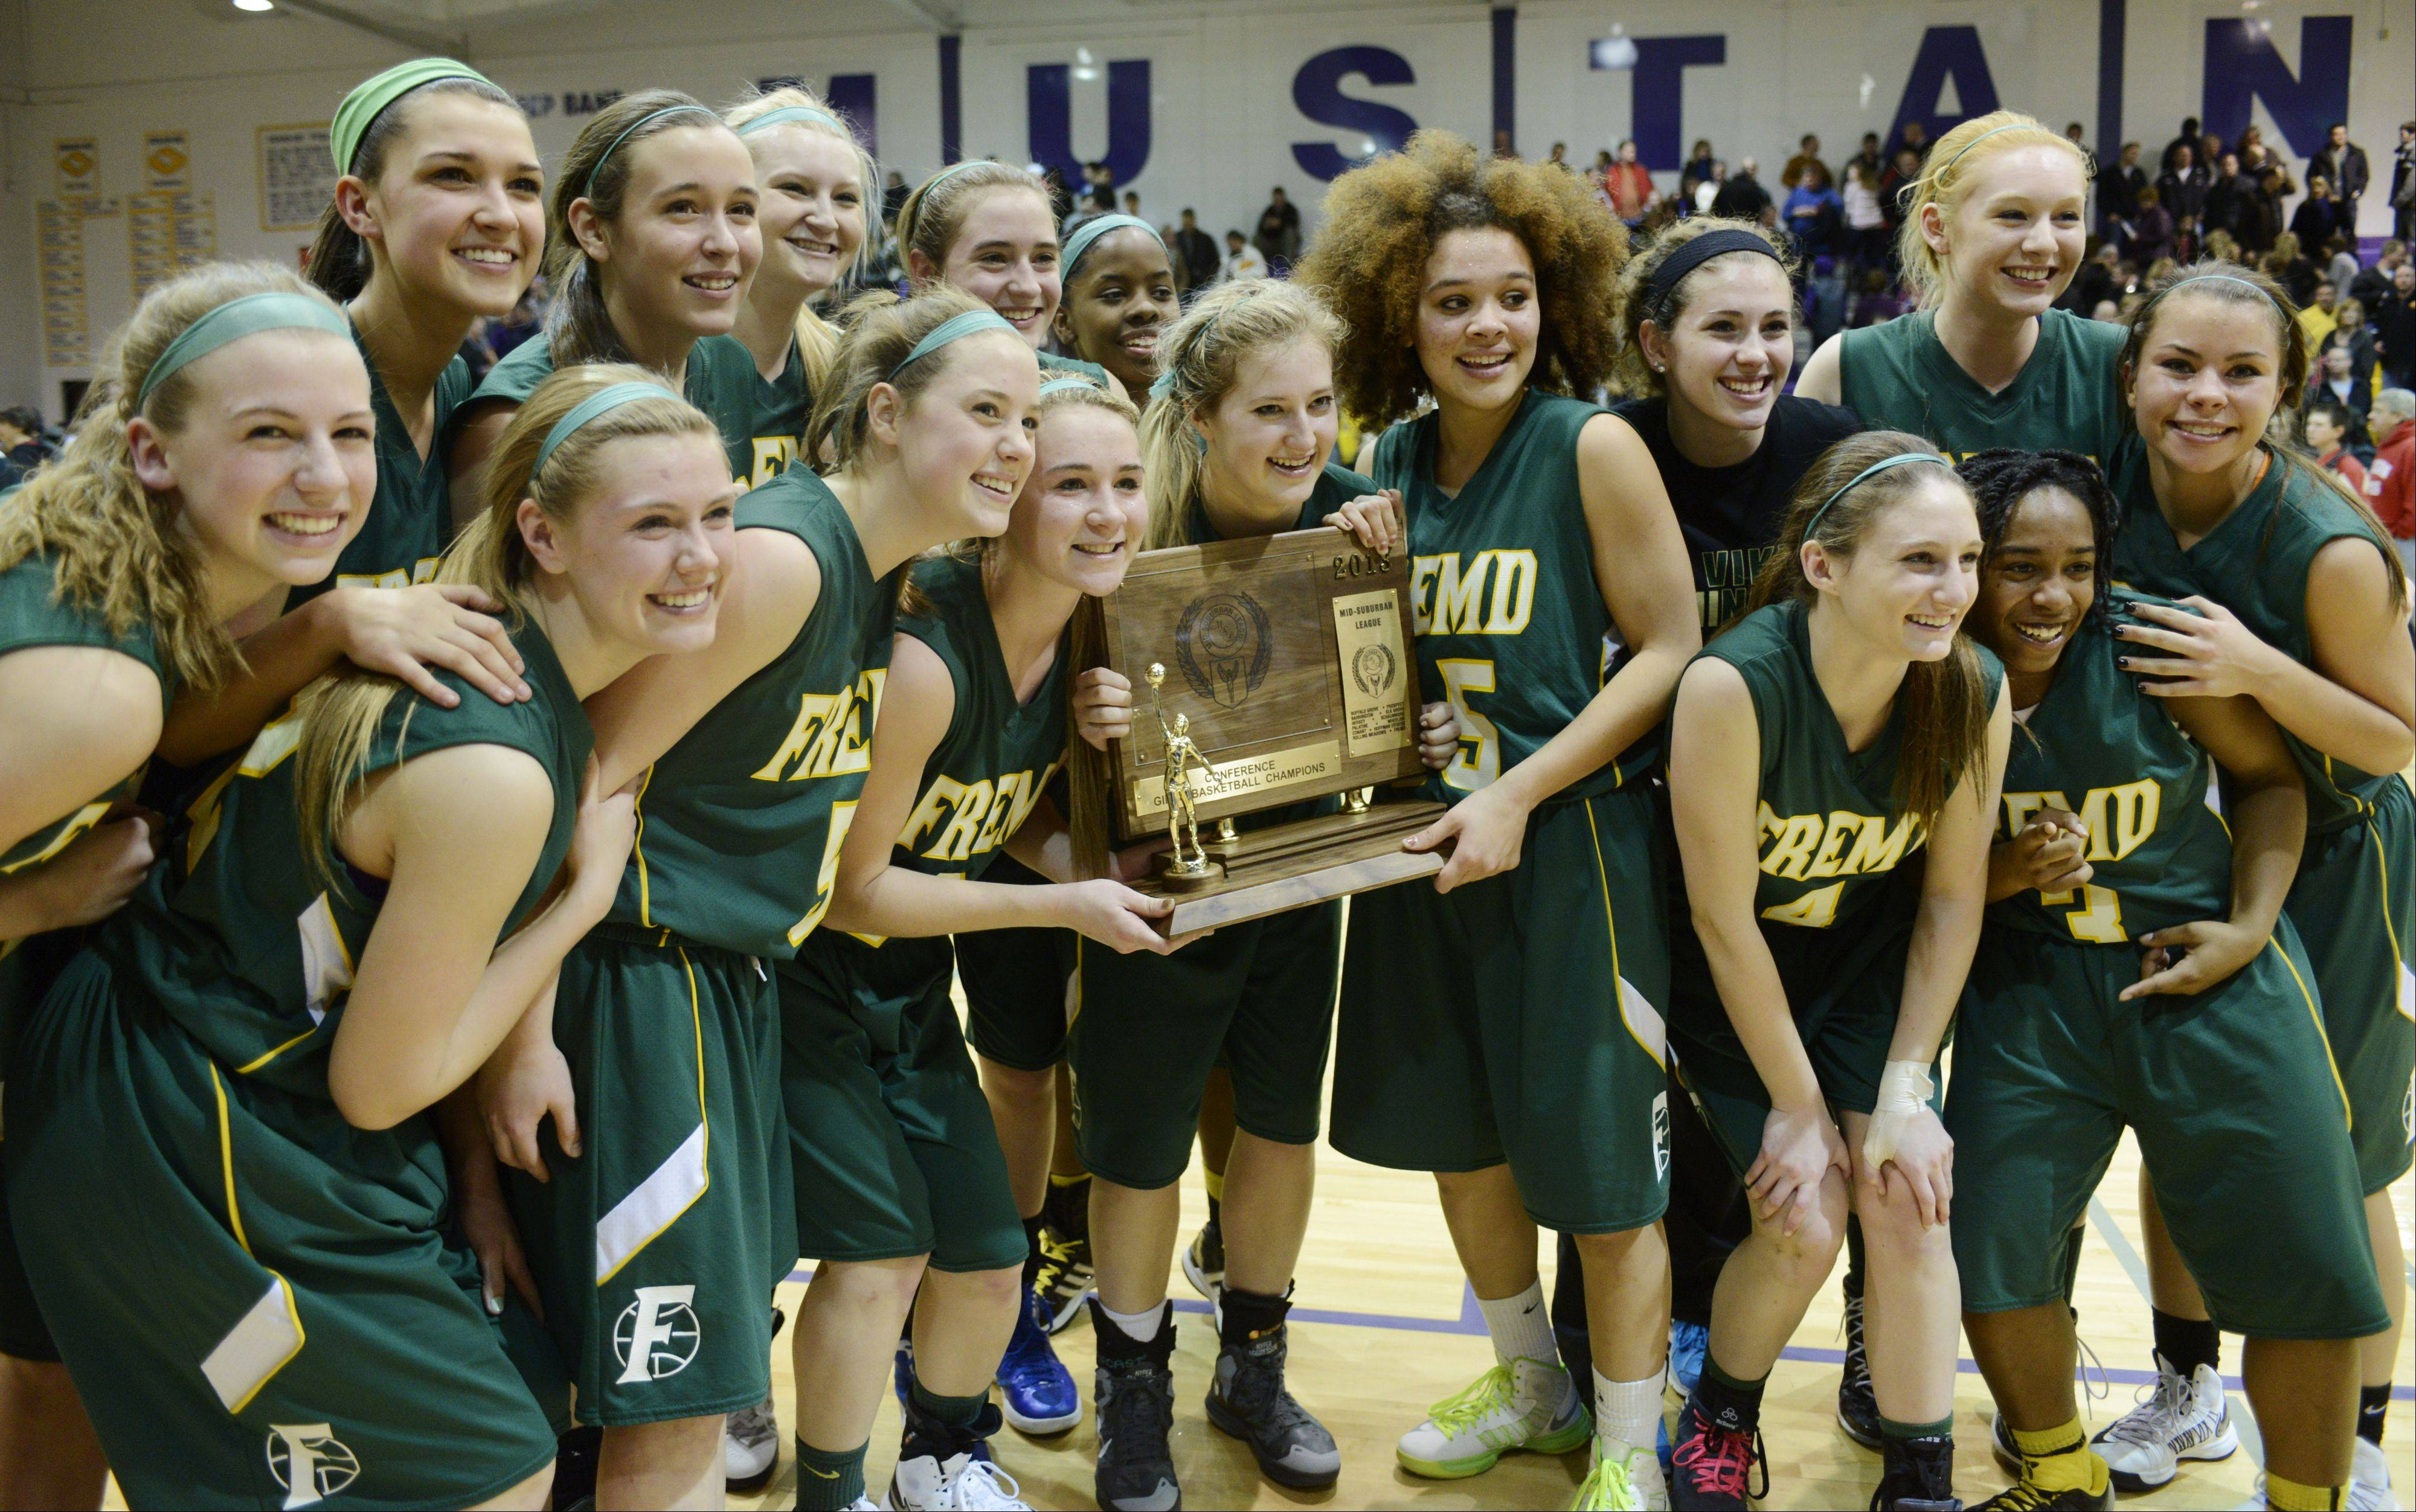 Members of the Fremd girls basketball team pose with their trophy after defeating Rolling Meadows in overtime during the Mid-Suburban League championship game Wednesday.